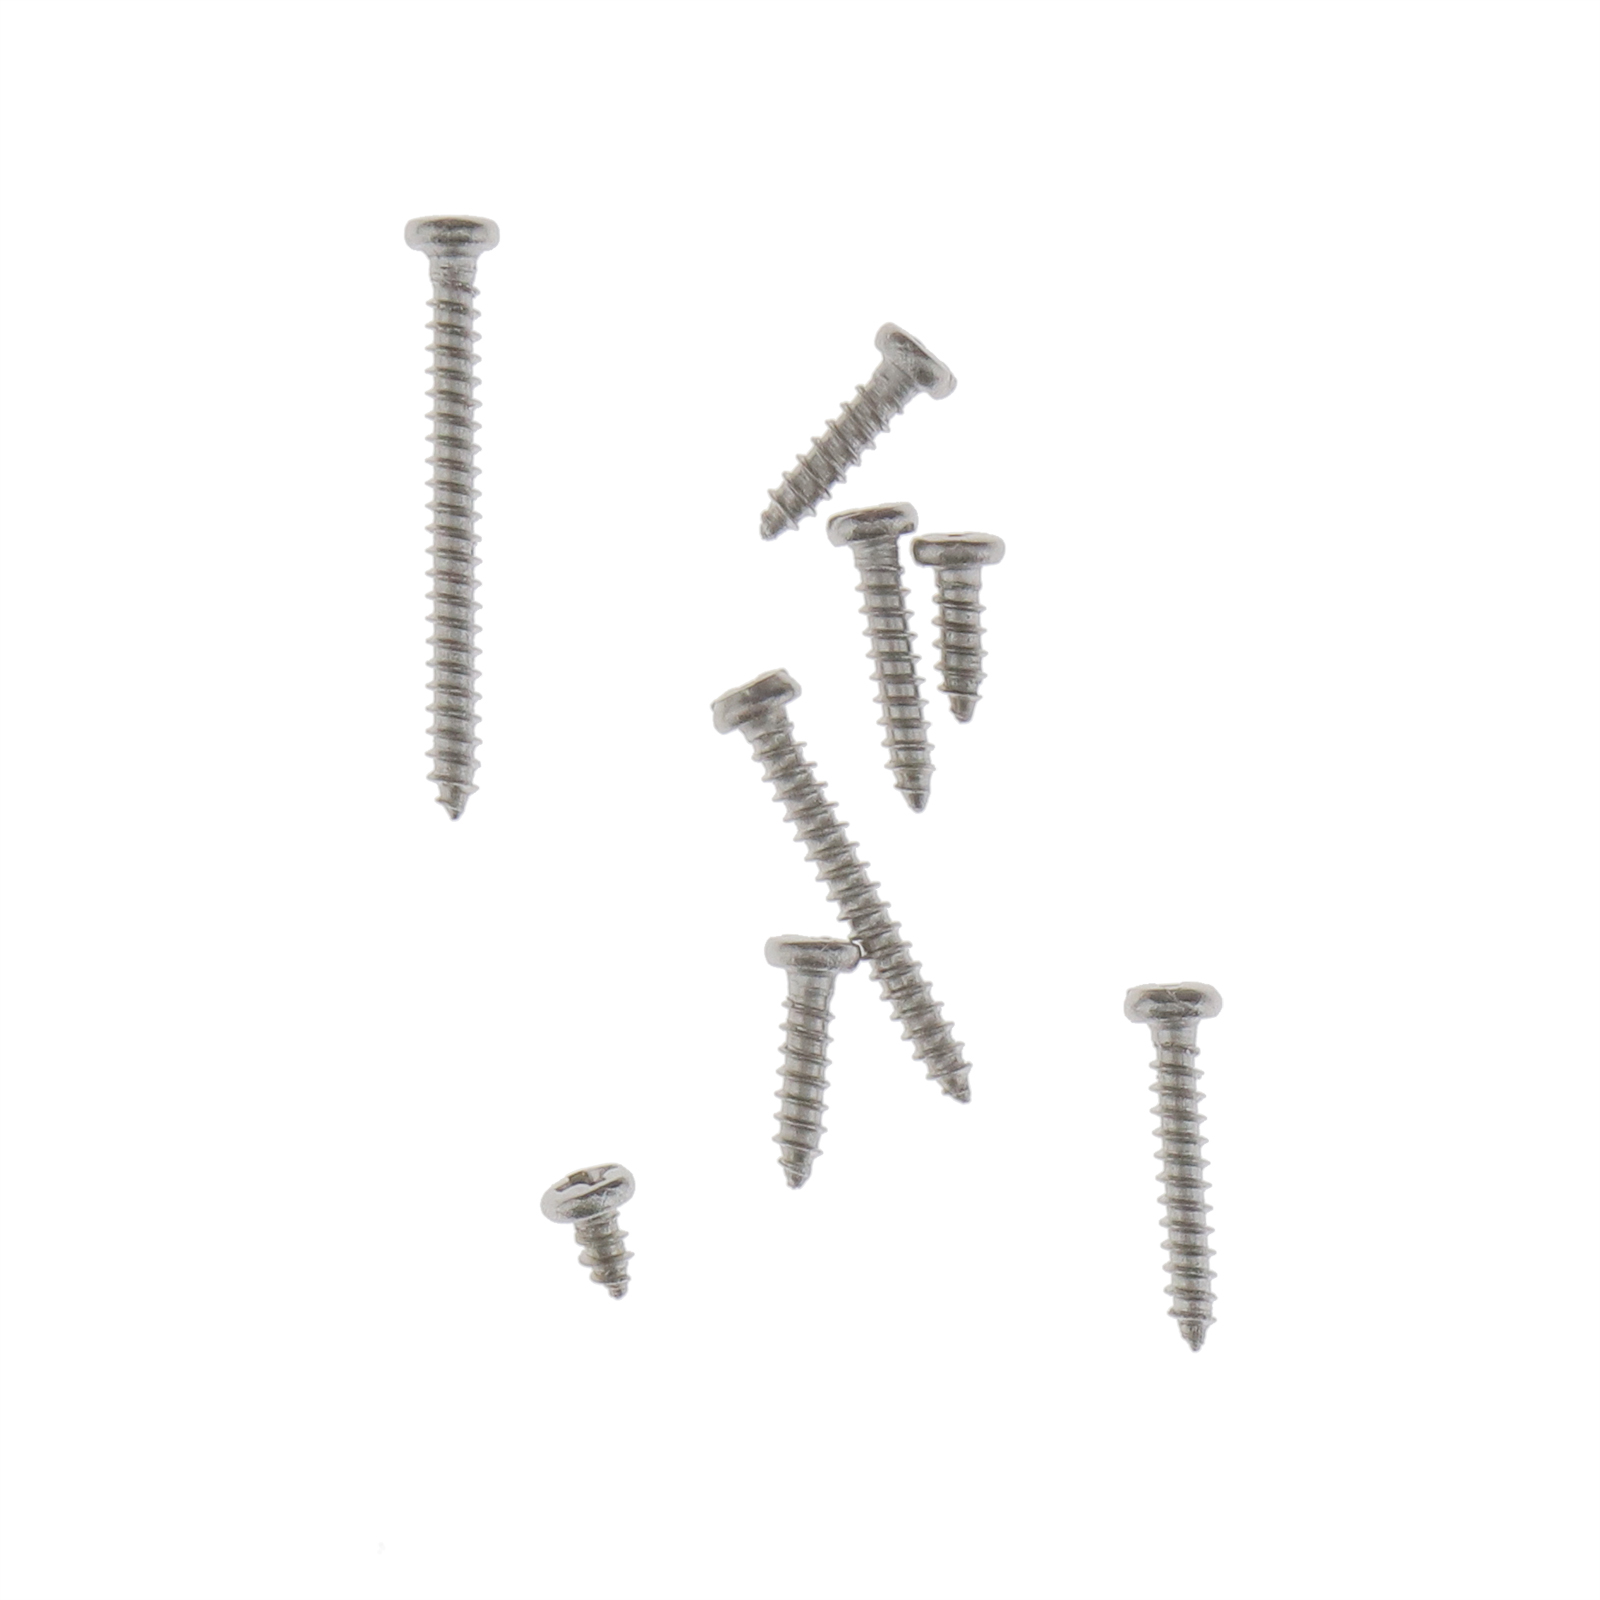 800pcs M2 Stainless Steel Self Tapping Screws Flat Head Home Fixing Tools